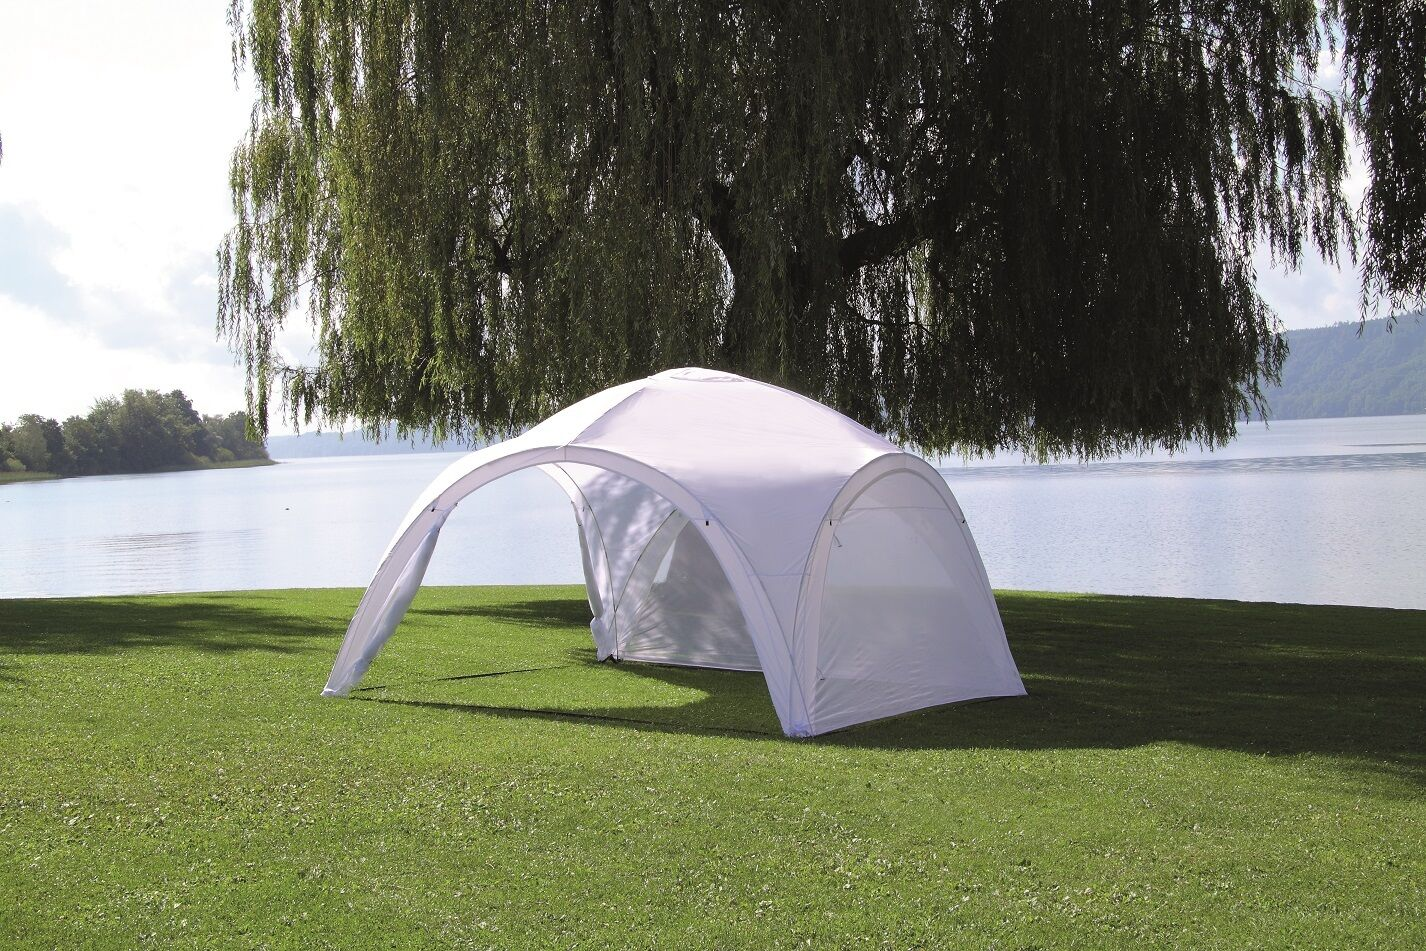 forma pavillon igloo 4 x 4 m meter gartenpavillon pavillion zelt 400 cm garten eur 99 95. Black Bedroom Furniture Sets. Home Design Ideas